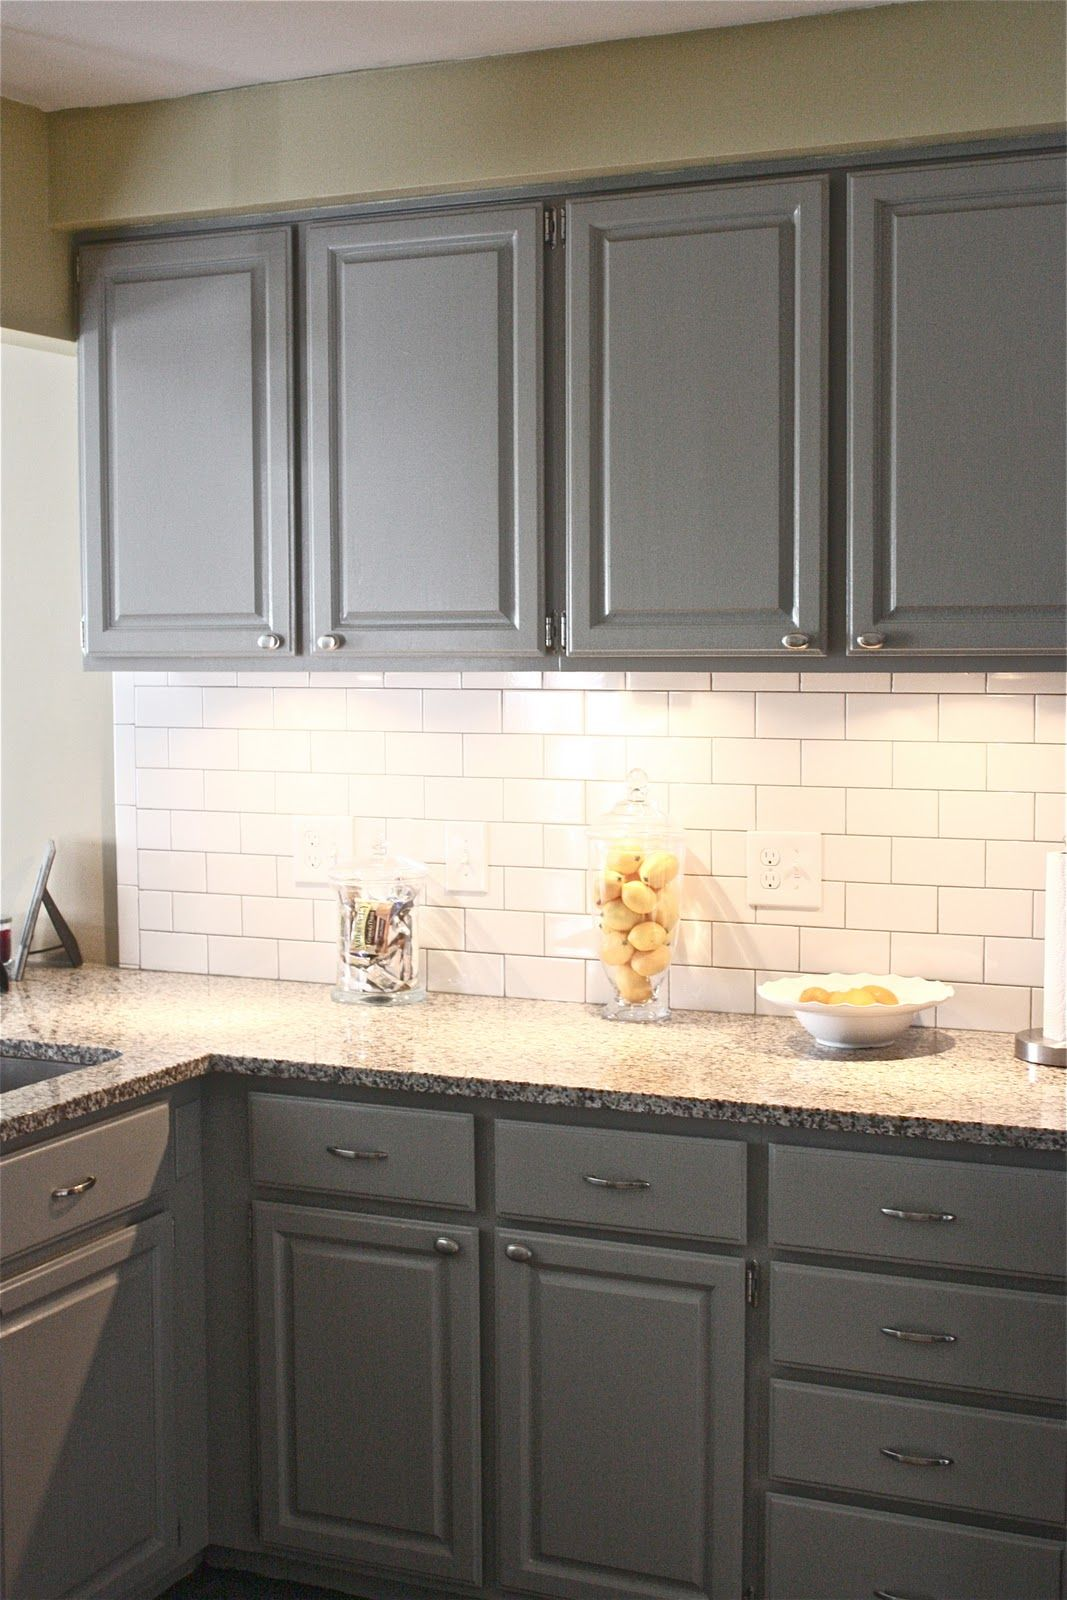 Gray Slate Backsplash White Cabinets Corian Countertops With Tile Floor